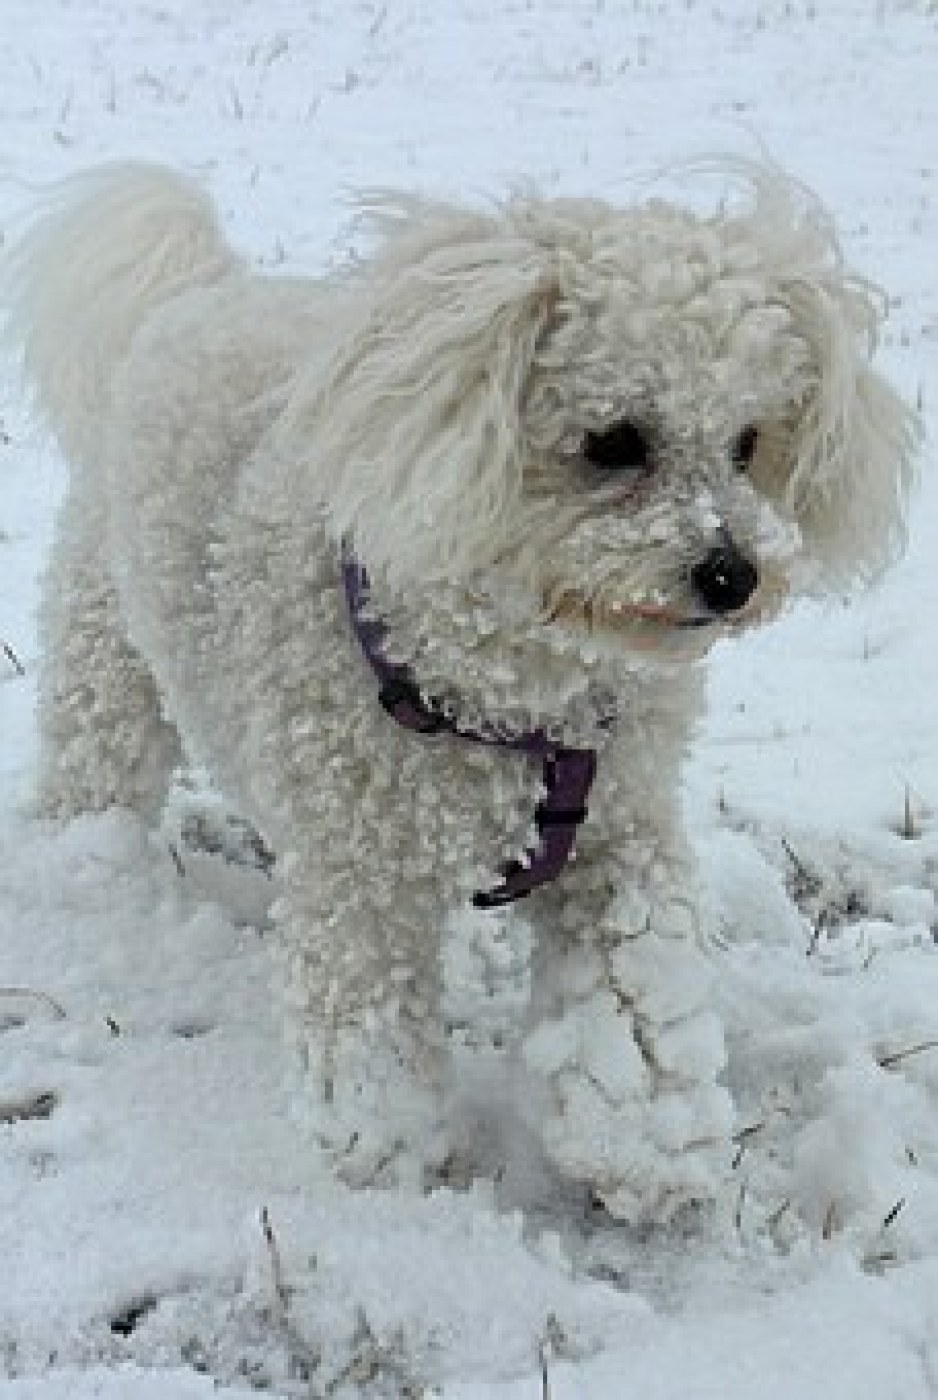 Frostbite in Dogs